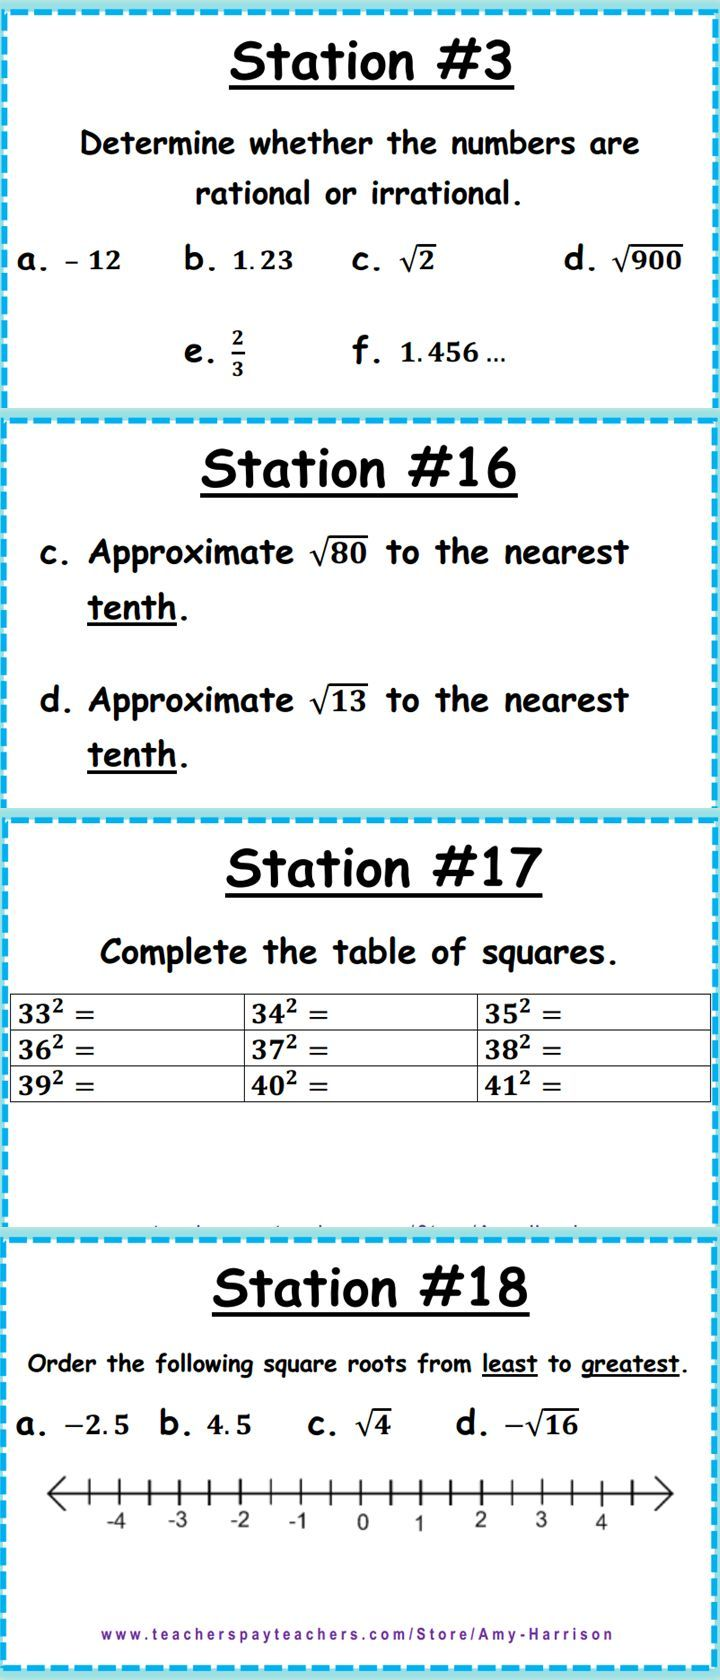 Image Result For Approximating Square Roots Graphic Organizer Middle School Math Teacher Middle School Math Education Math